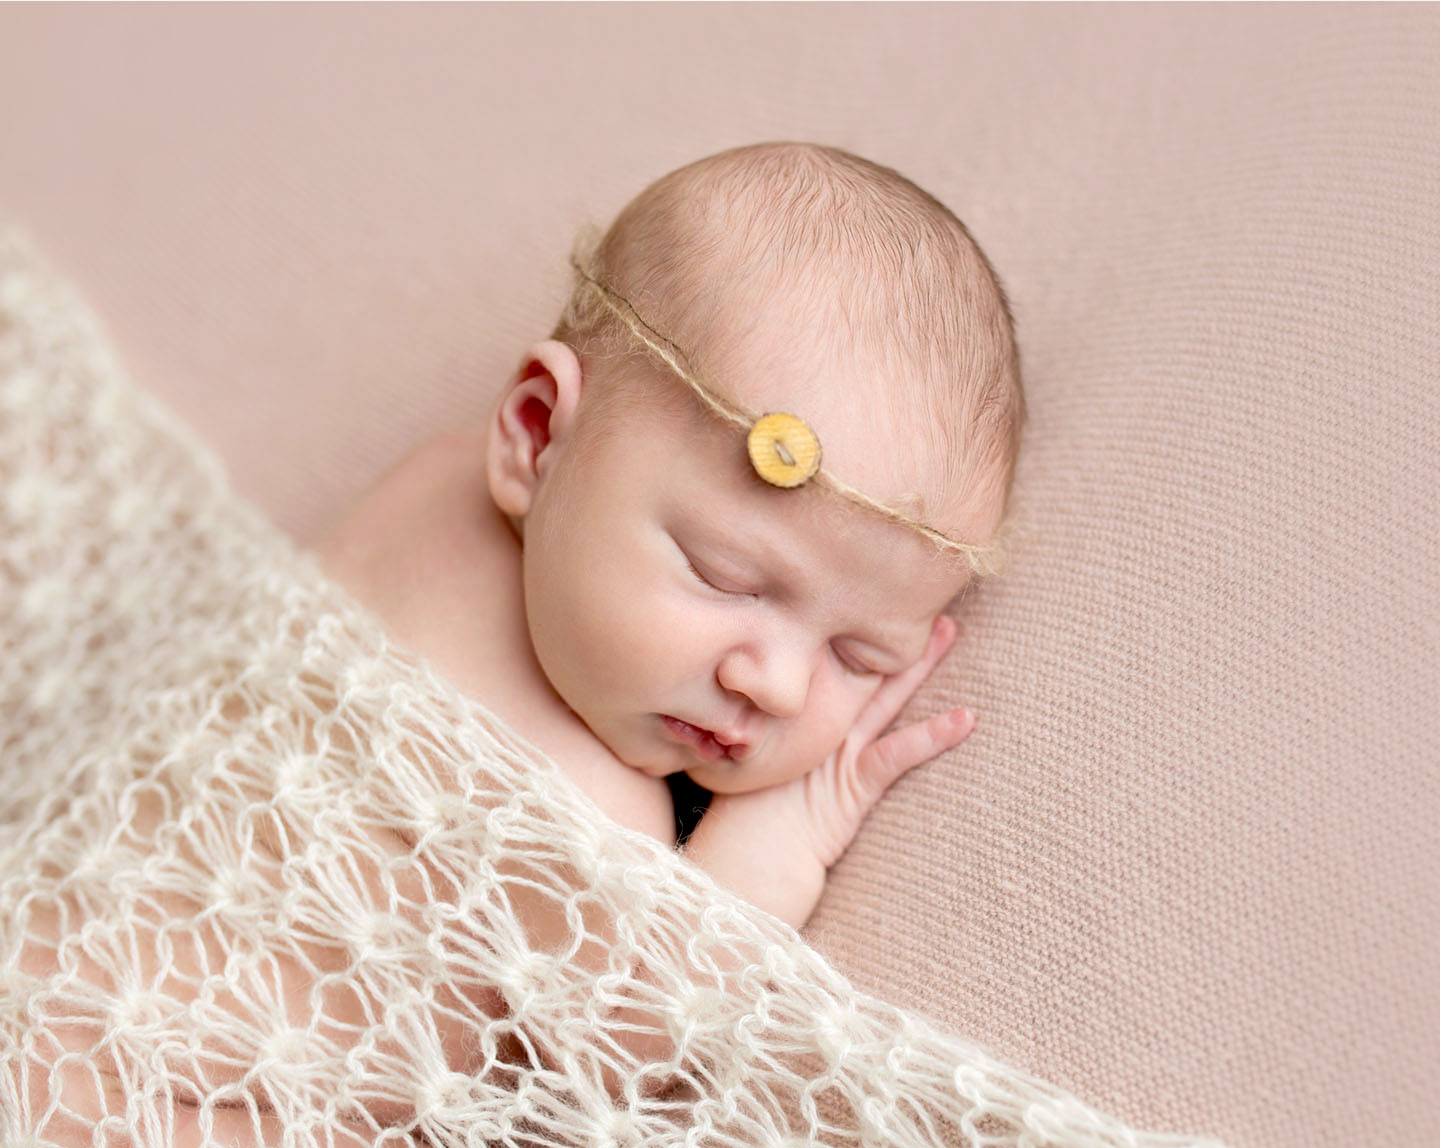 Have a fun and relaxing newborn photoshoot with Kelly